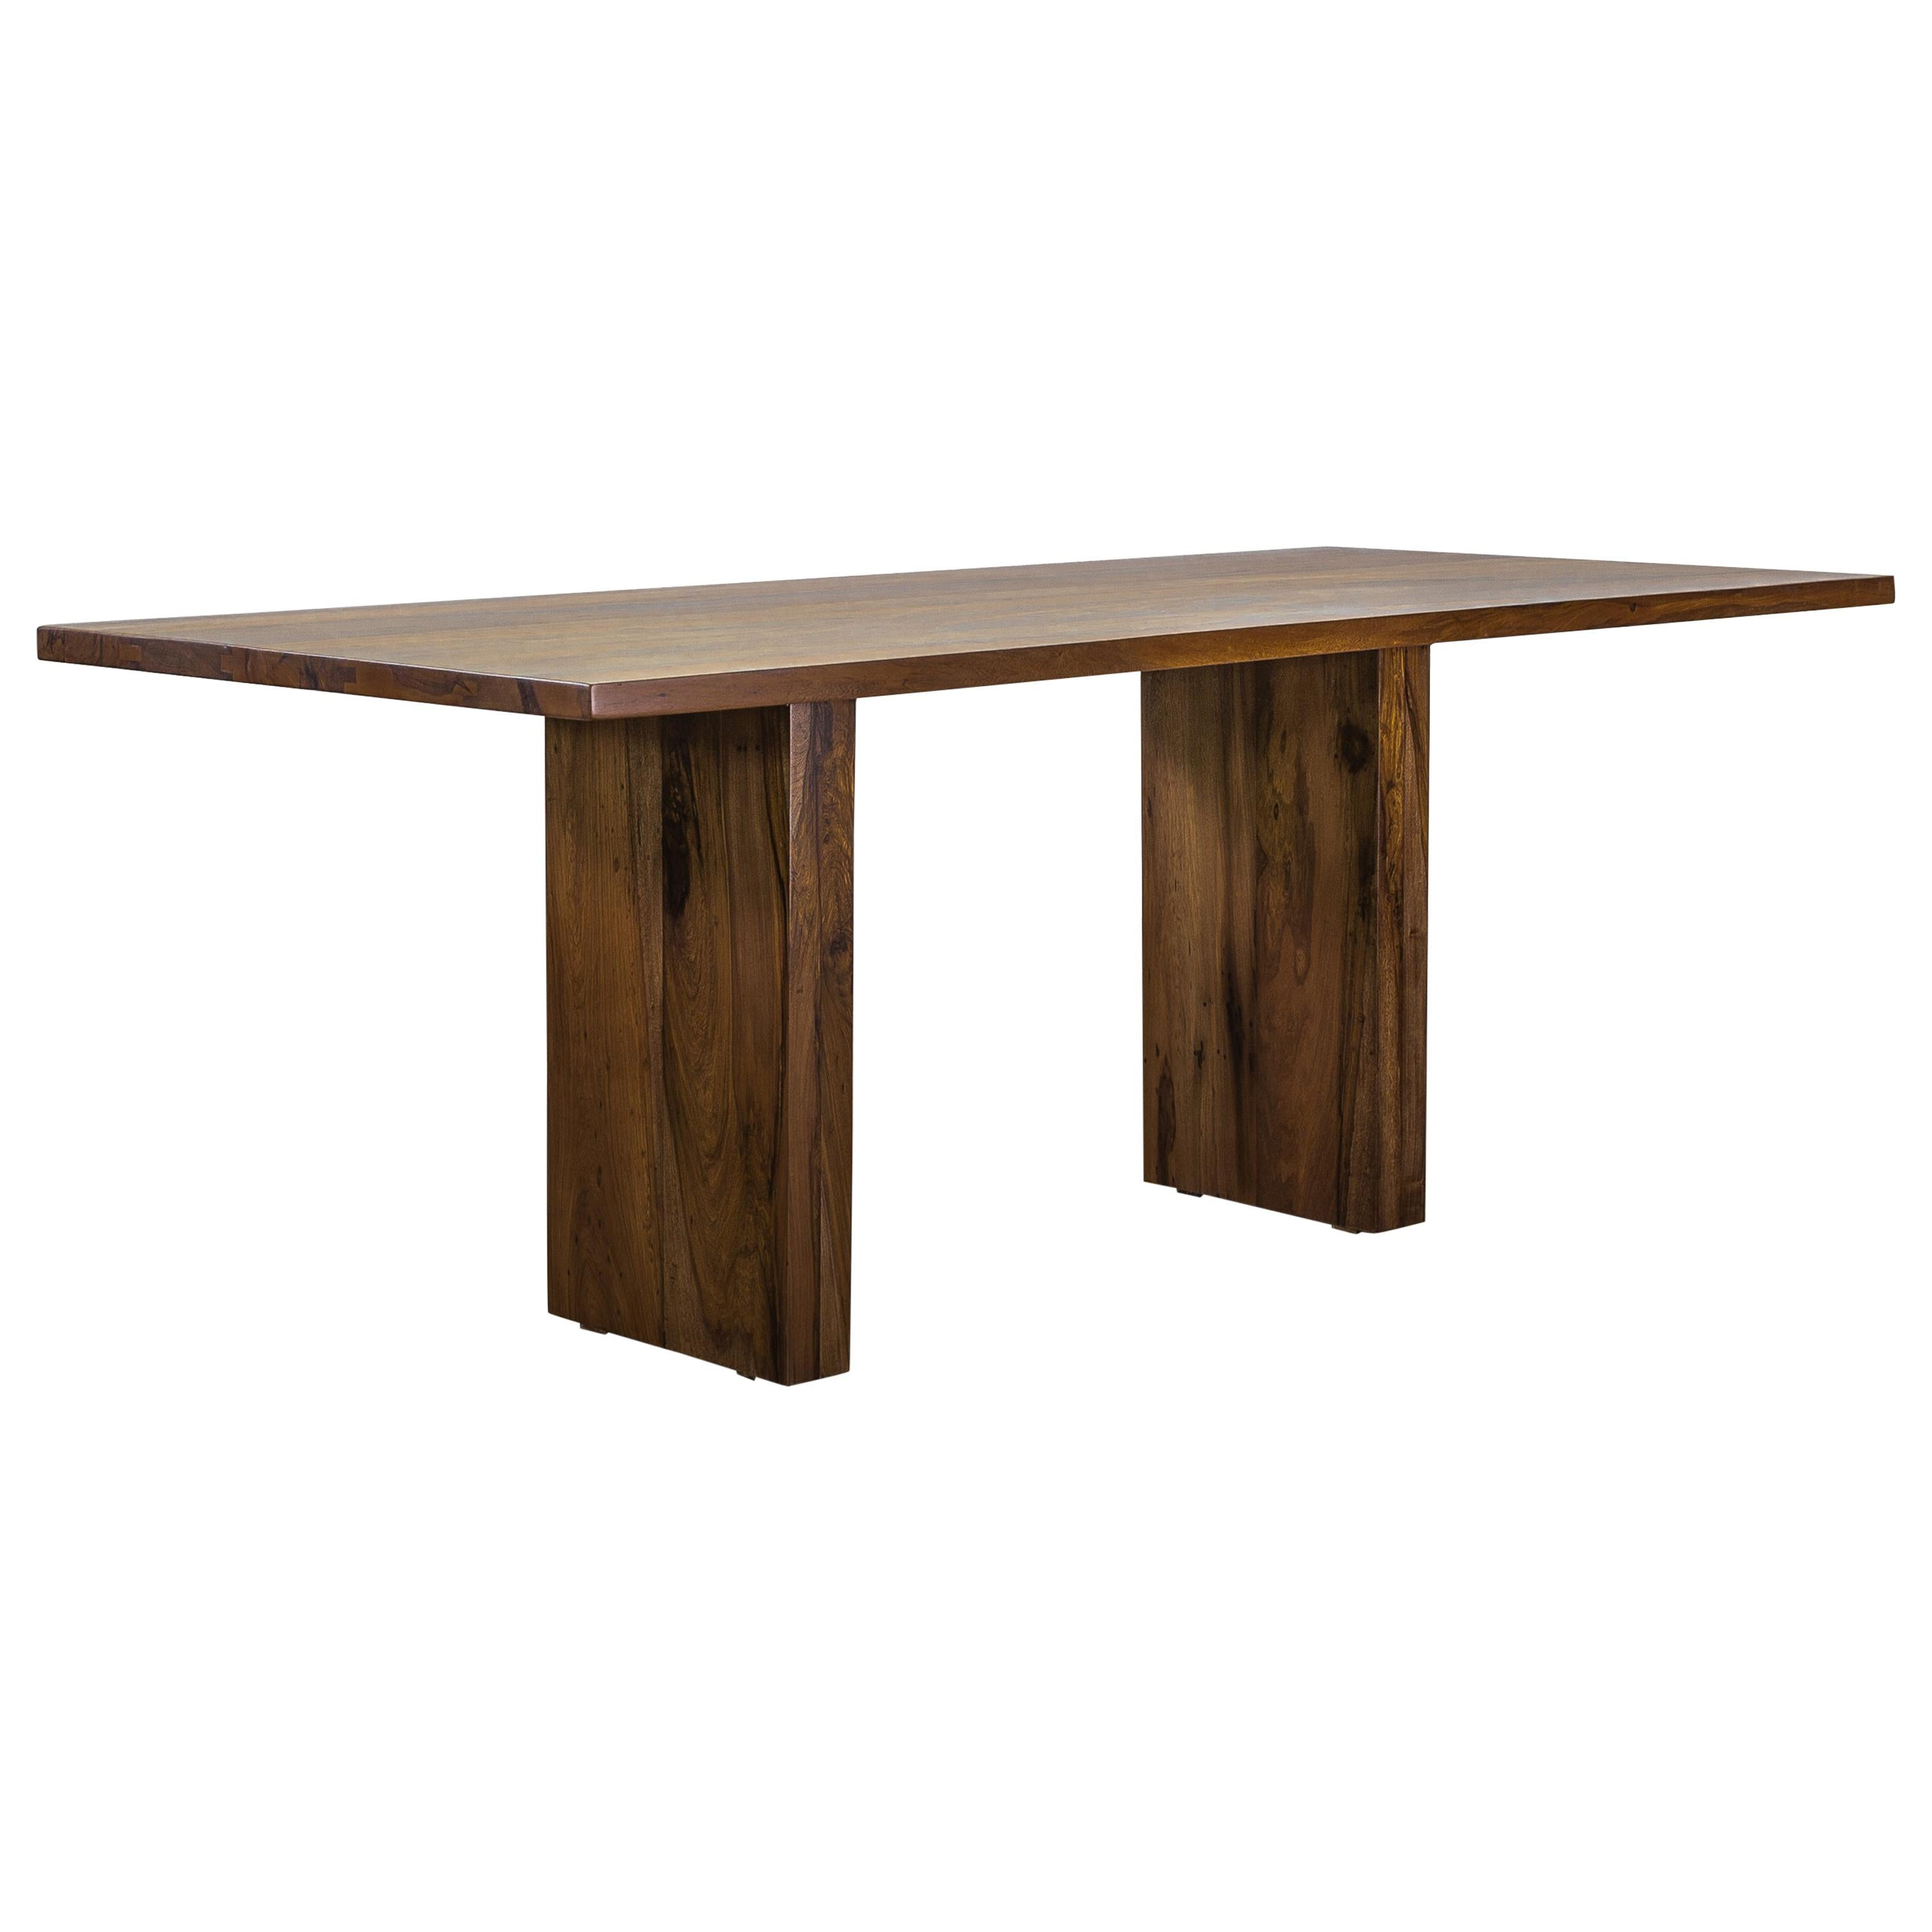 Solid Wood Twin Pedestal Modern Dining Table from Costantini, Andre 'In Stock'